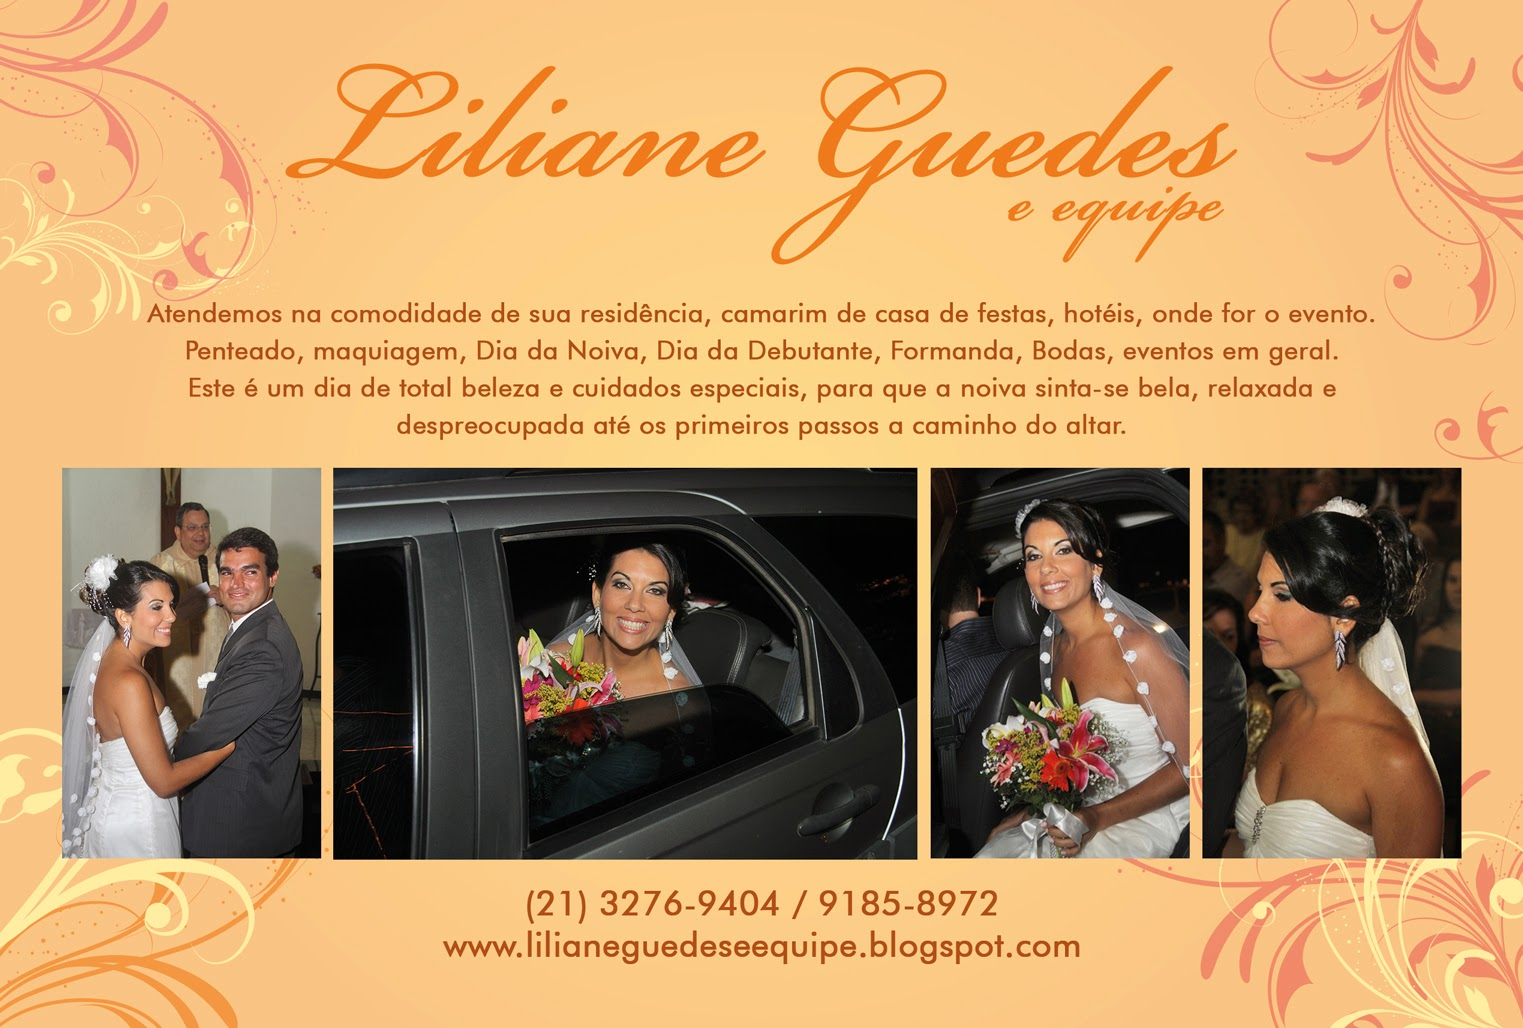 LILIANE GUEDES E EQUIPE